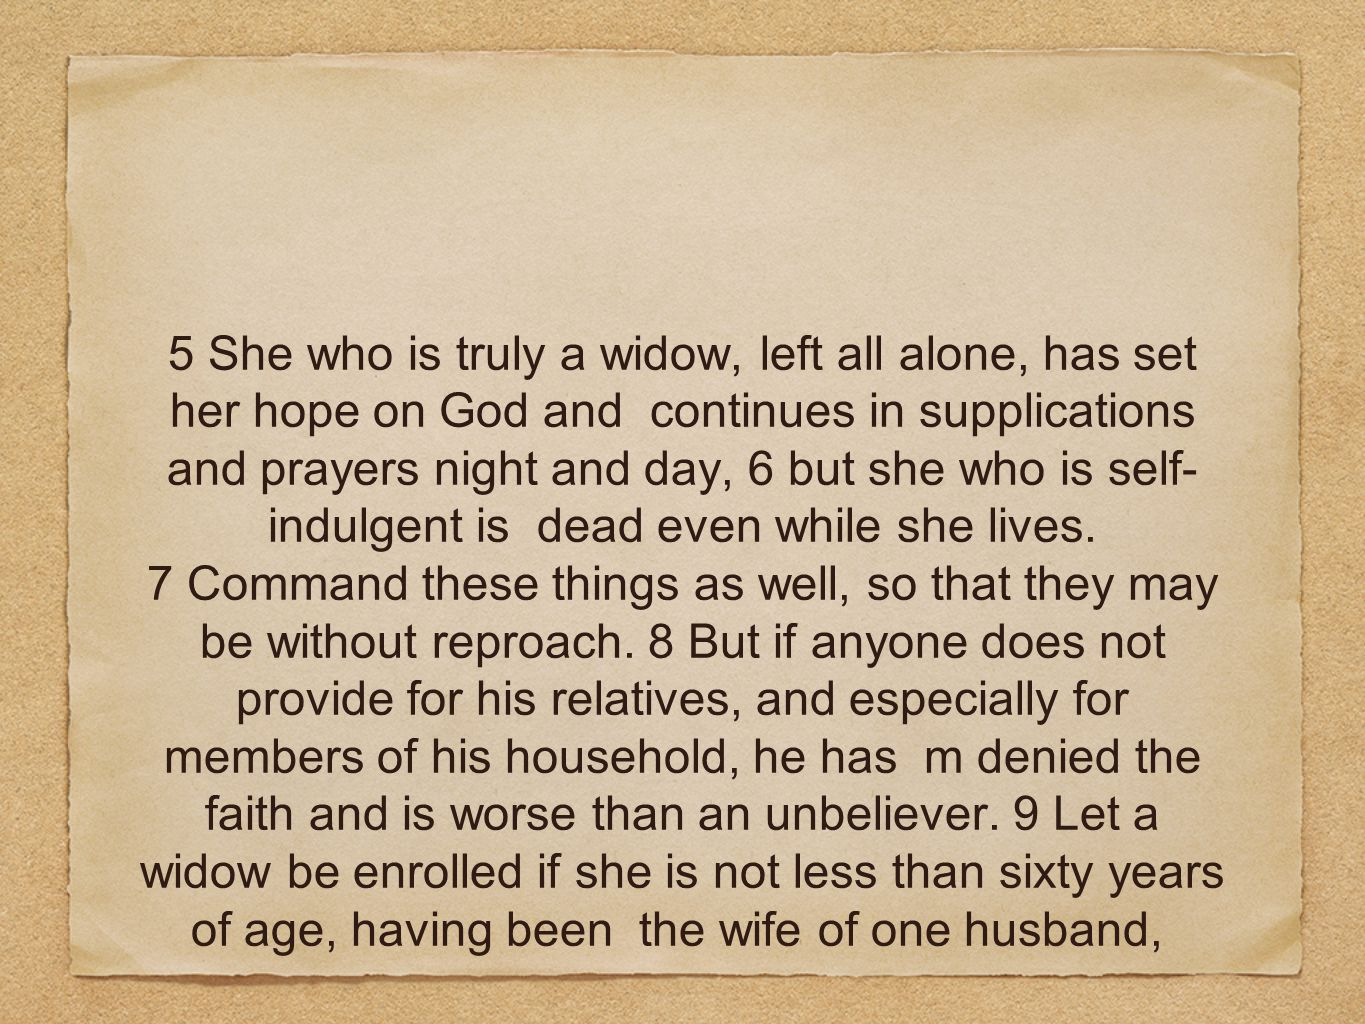 5 She who is truly a widow, left all alone, has set her hope on God and continues in supplications and prayers night and day, 6 but she who is self- i